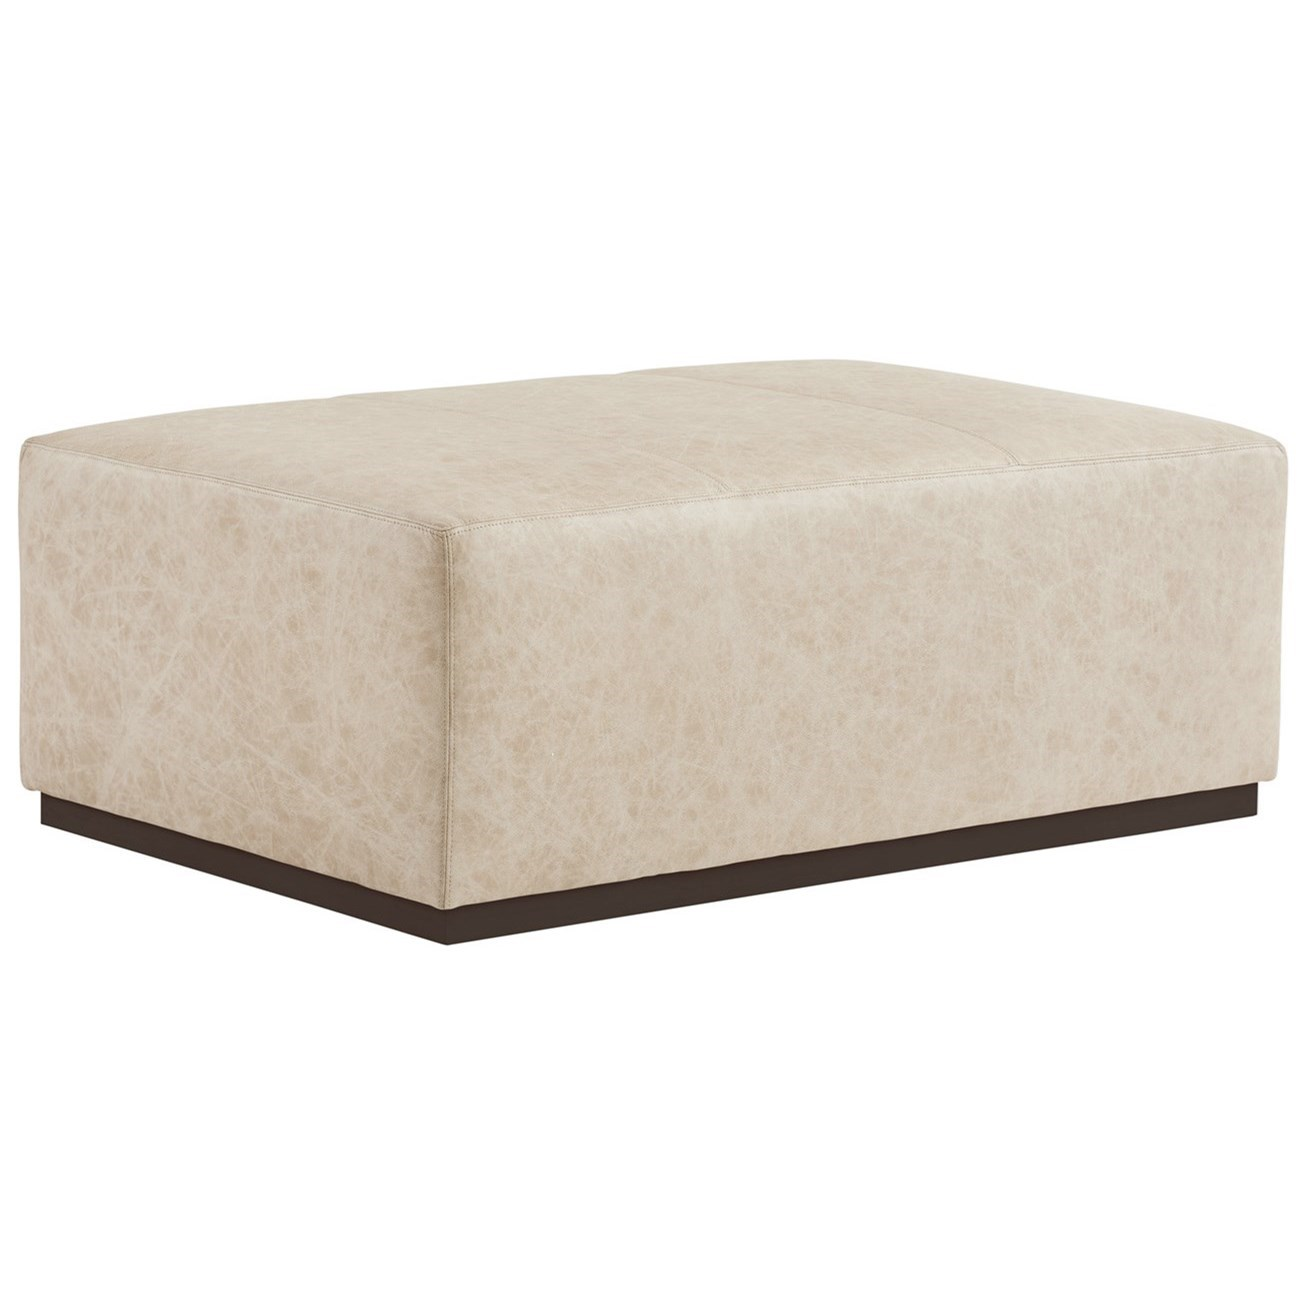 Barclay Butera Upholstery Sterling Cocktail Ottoman by Barclay Butera at Baer's Furniture